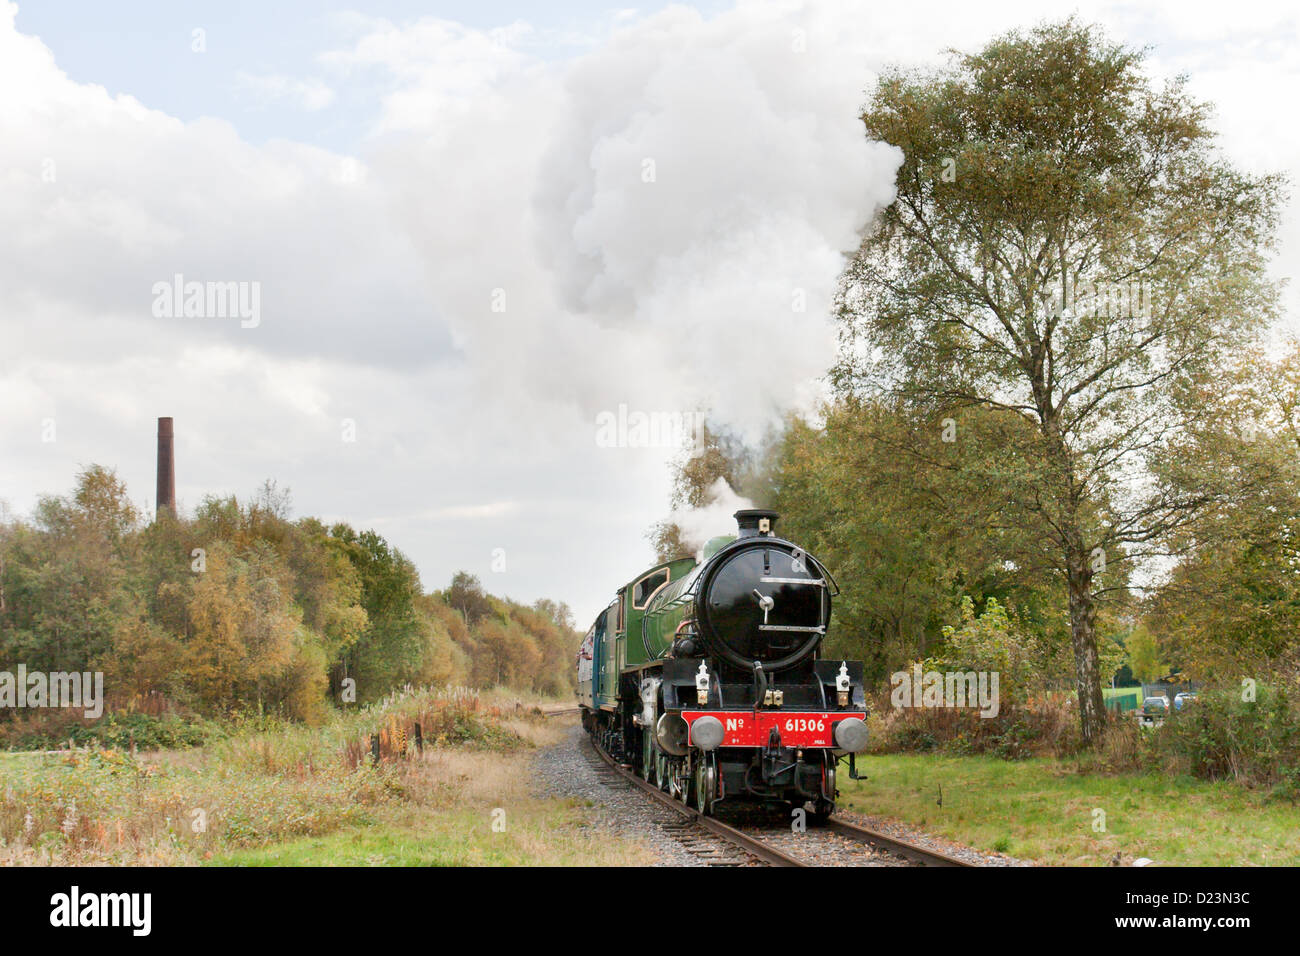 Steam locomotive pulling a passenger train on the East Lancs Railway at Ramsbottom - Stock Image